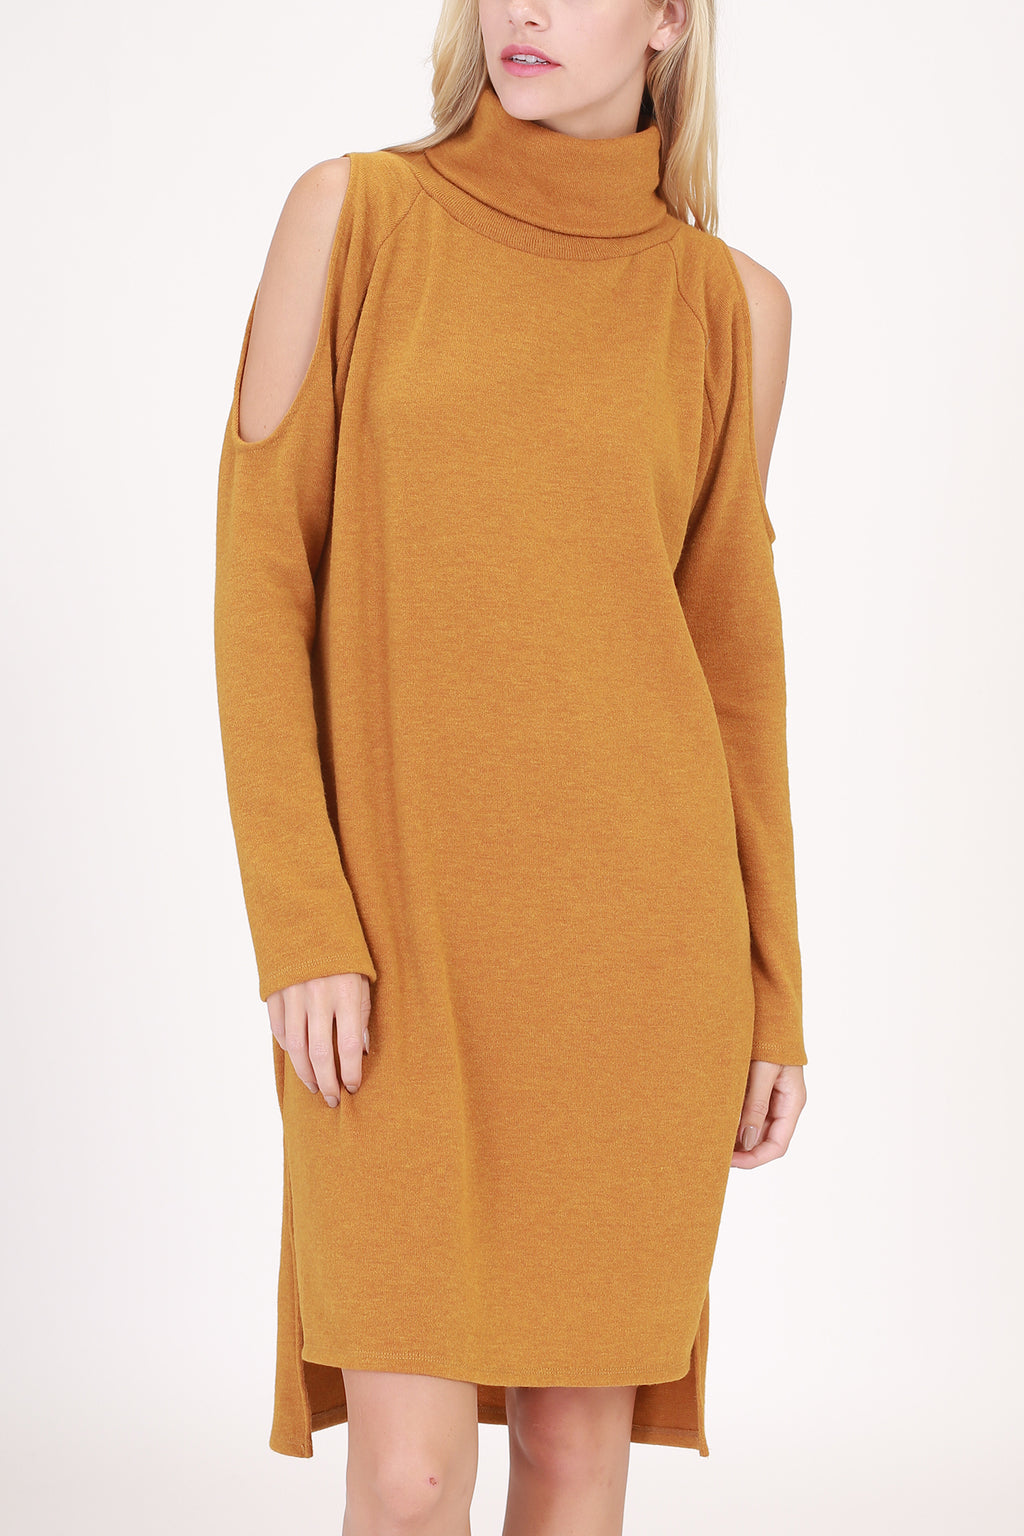 Turtle Neck Cold Shoulder Sweter Dress